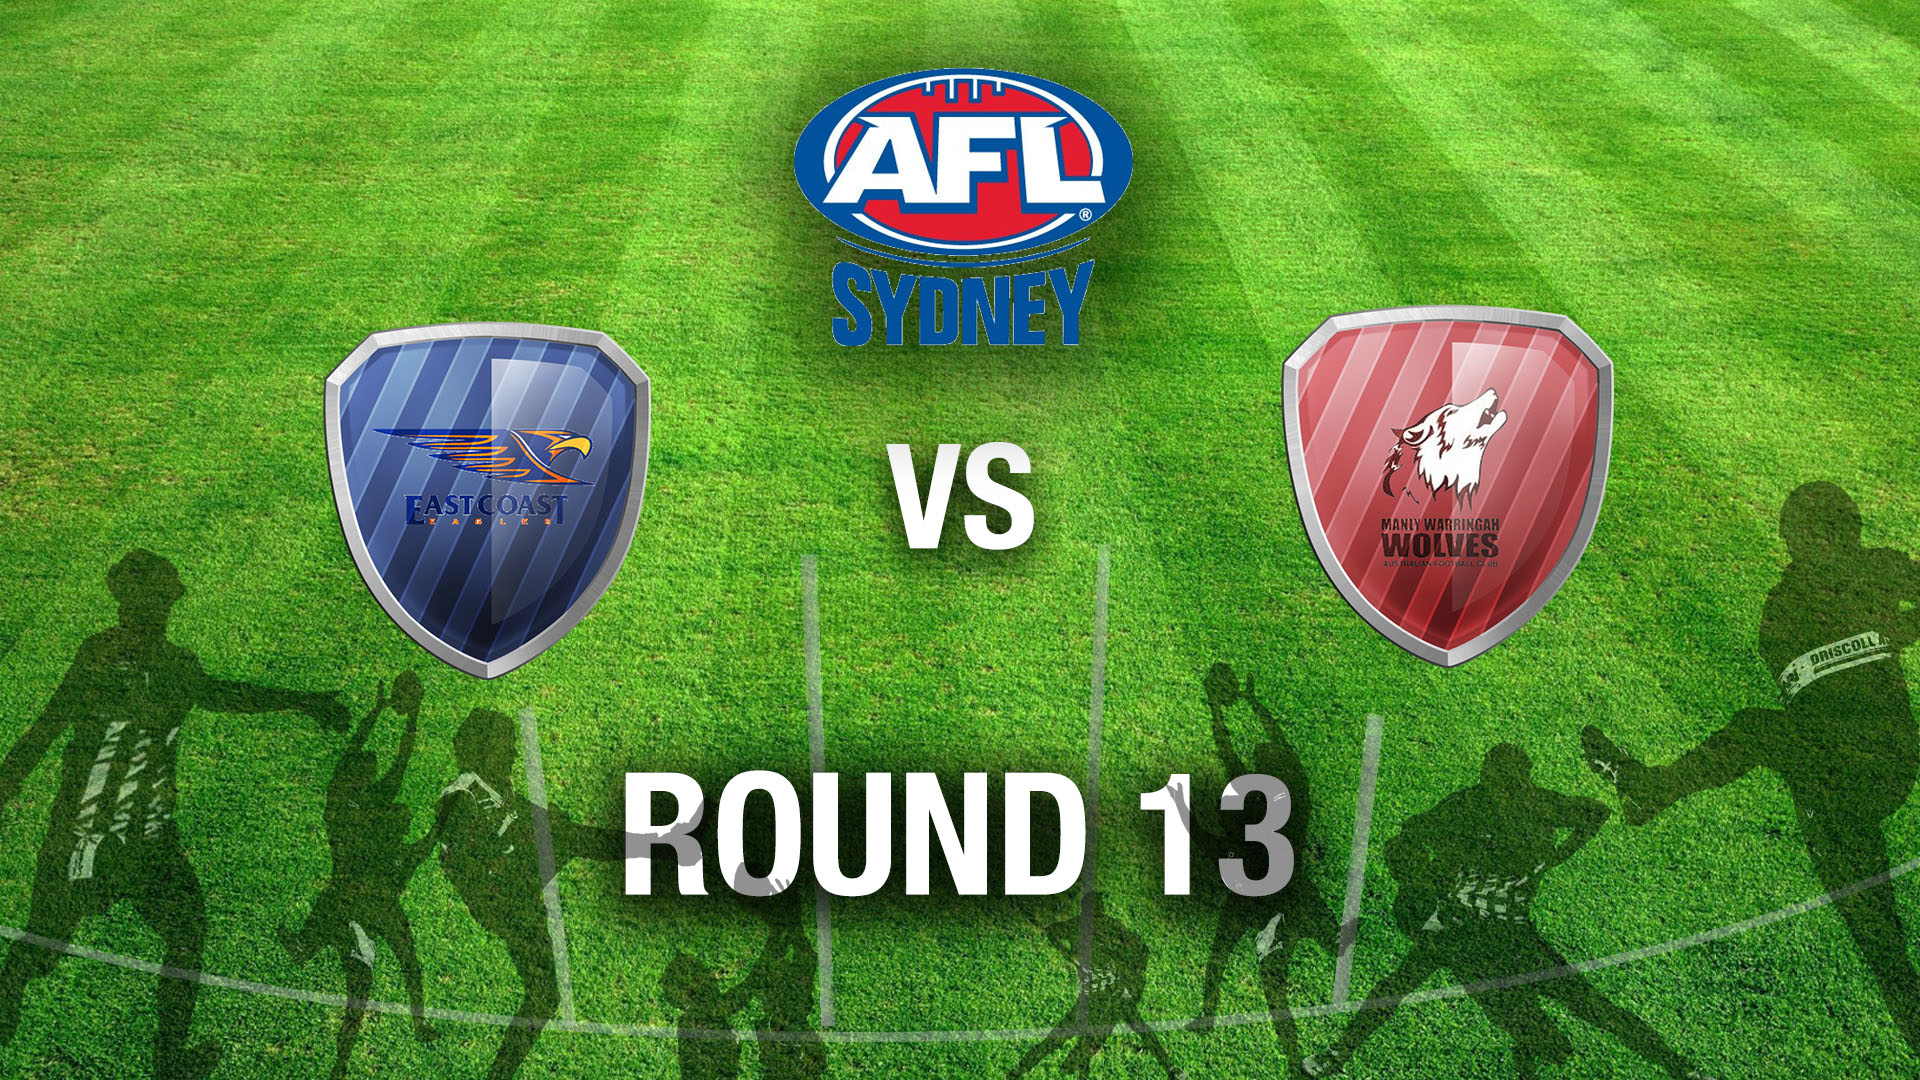 RD 13 East Coast Eagles v Manly Warringah Wolves